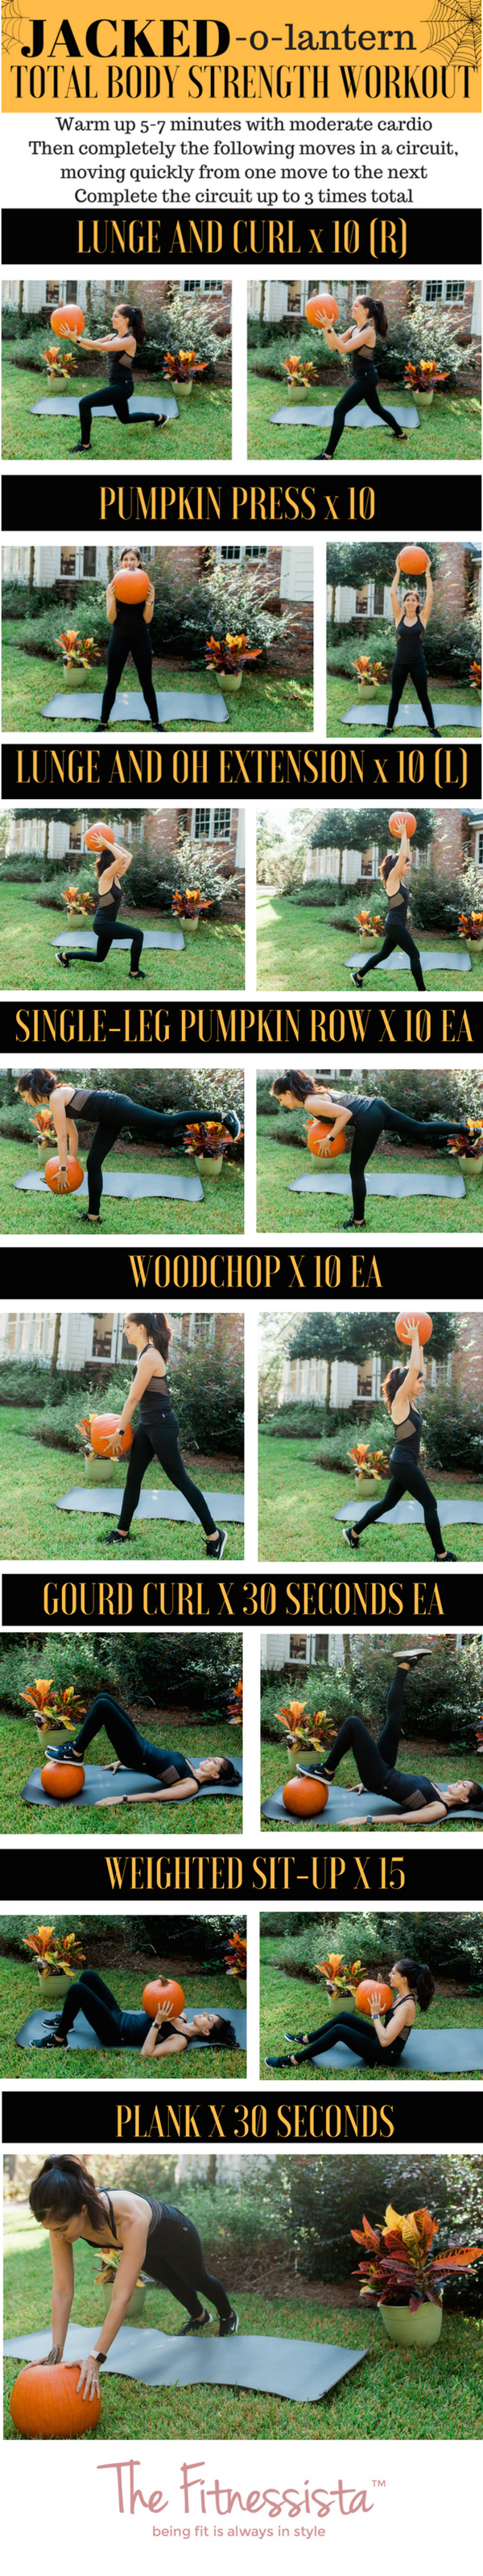 Jacked-o-Lantern total body strength workout using a pumpkin! fitnessista.com